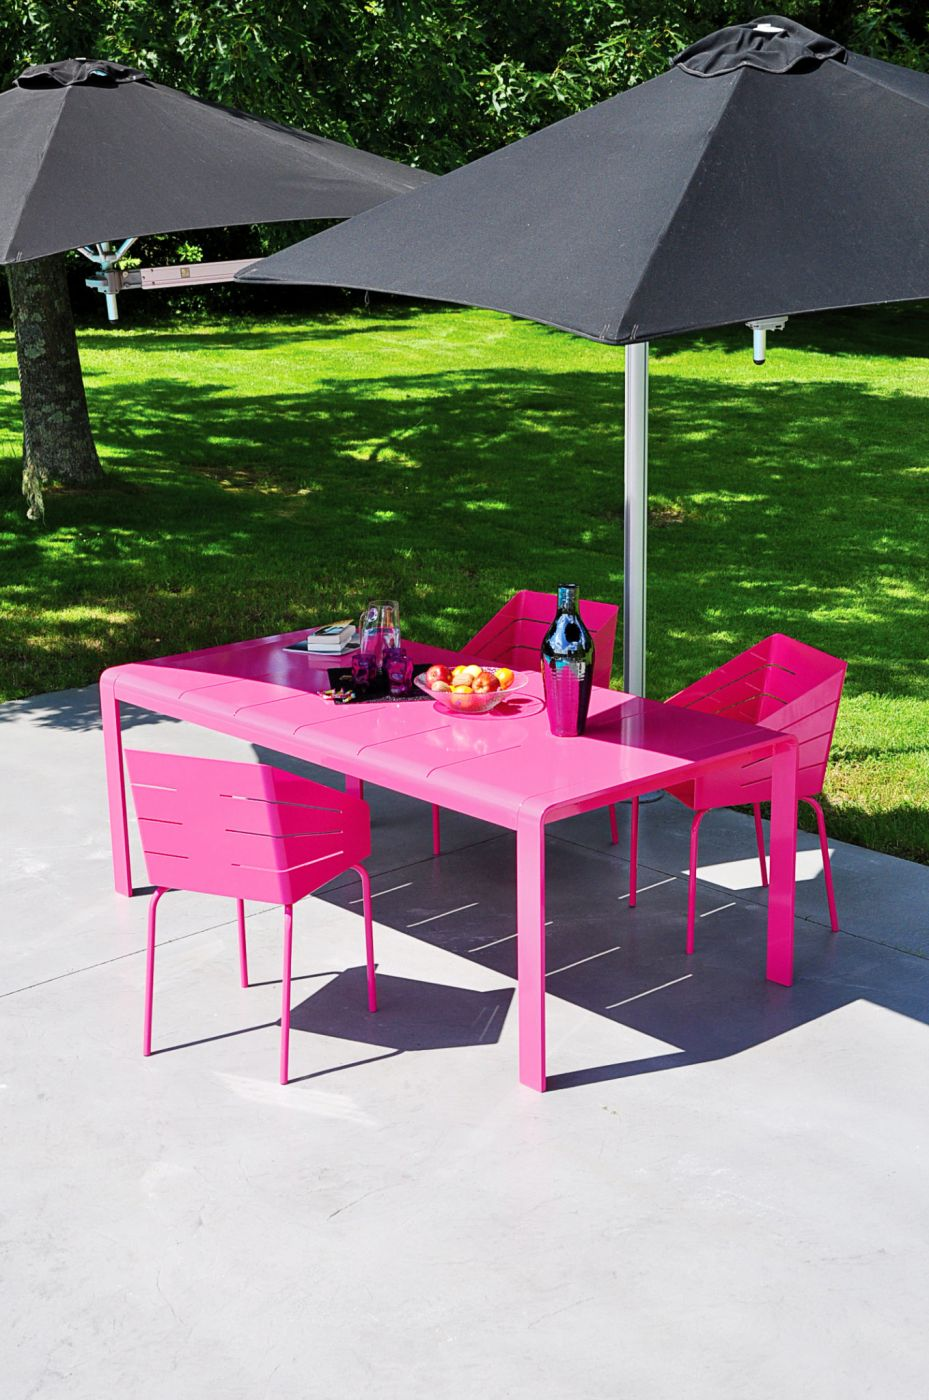 Table de jardin aluminium design BIRD Art'Mely Elodie Alain